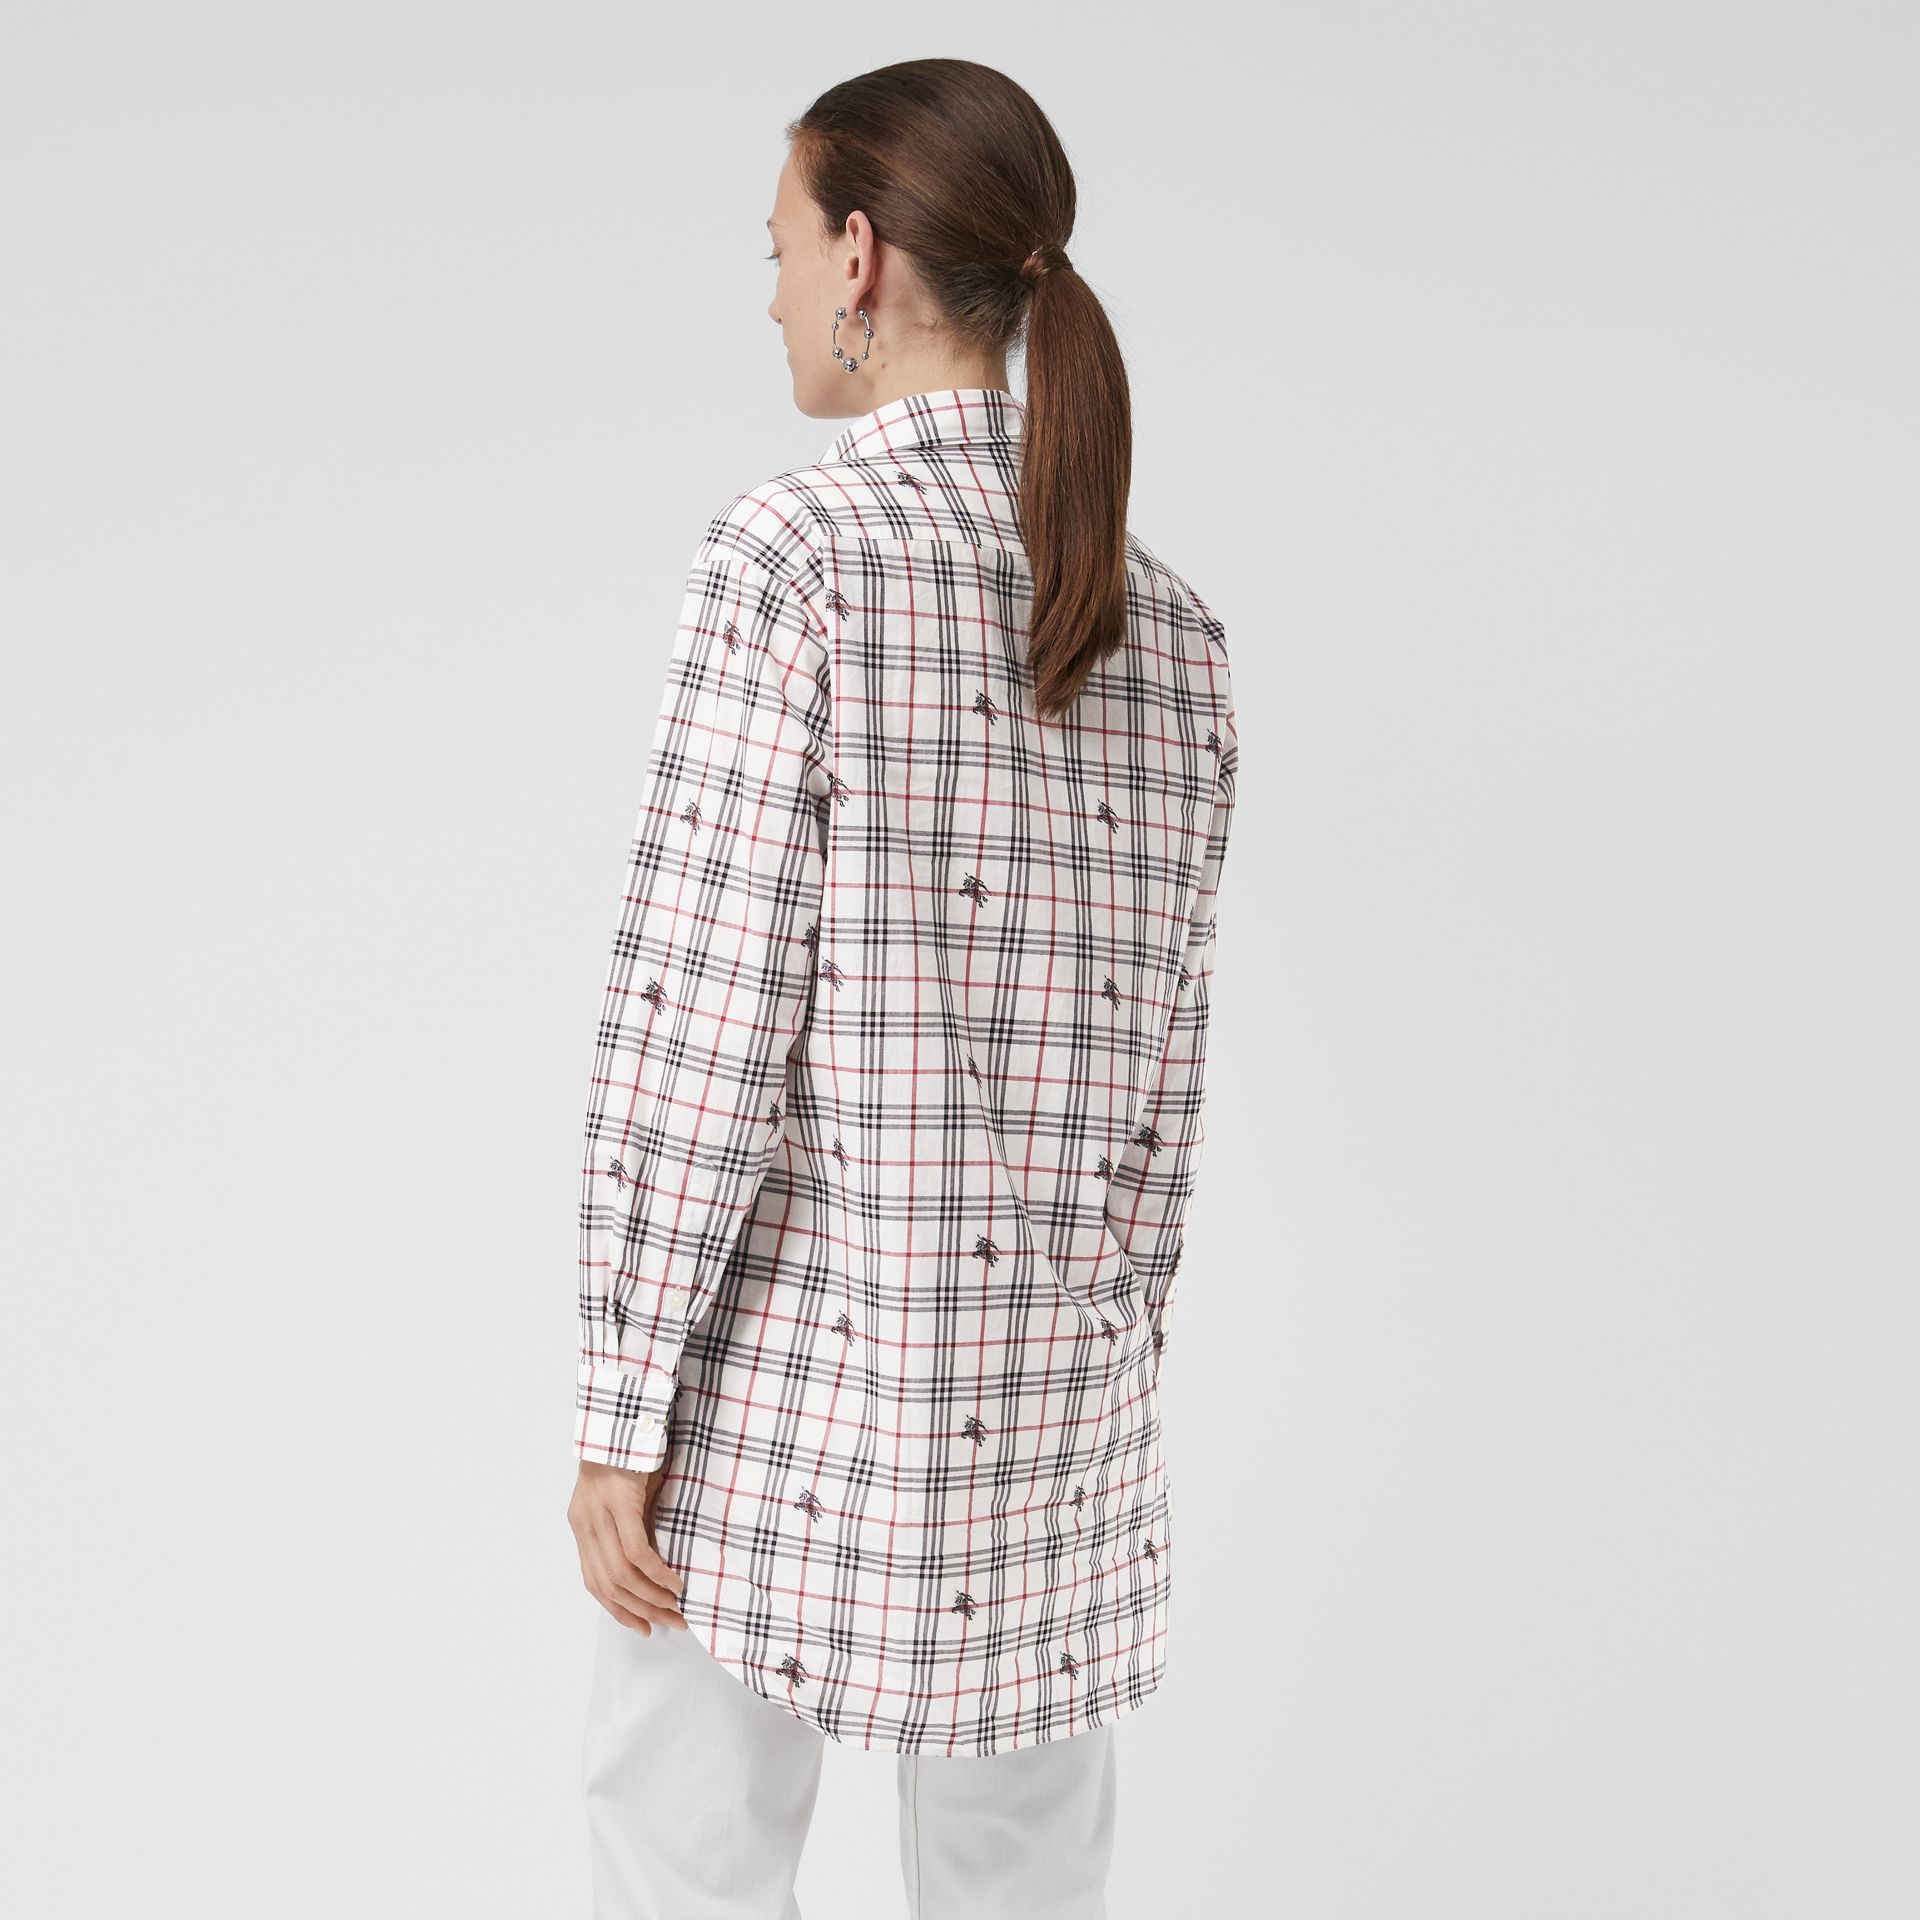 Equestrian Knight Check Cotton Shirt in Natural White - Women | Burberry - gallery image 2